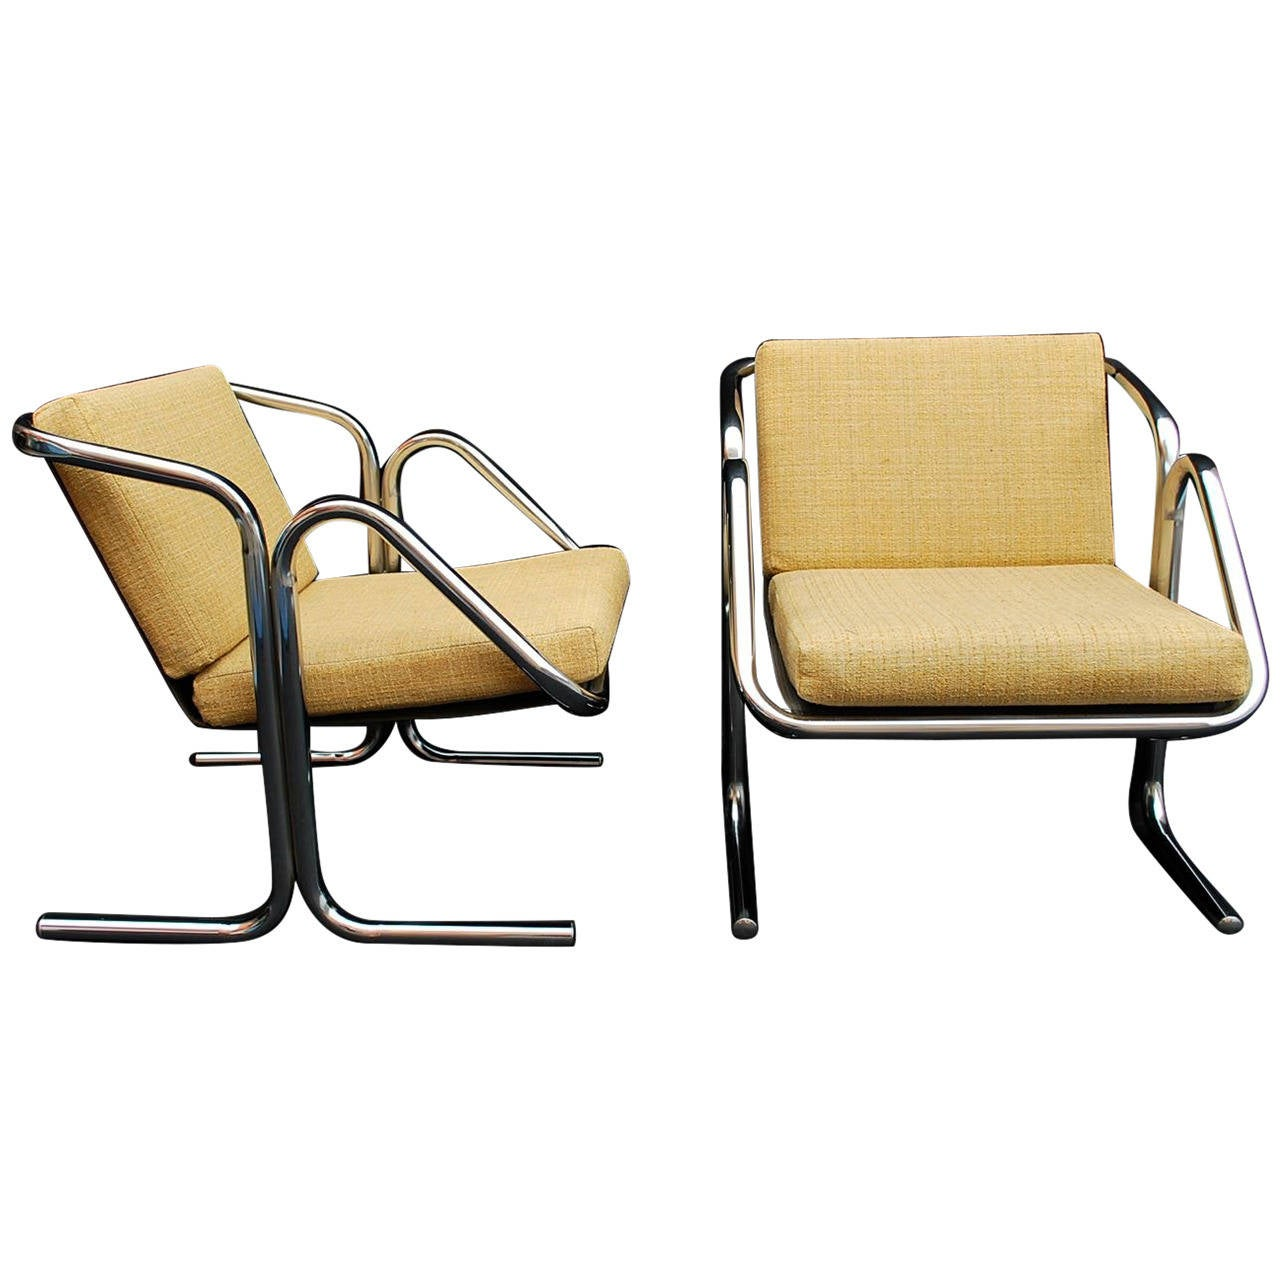 Pair of Chairs by Jerry Johnson